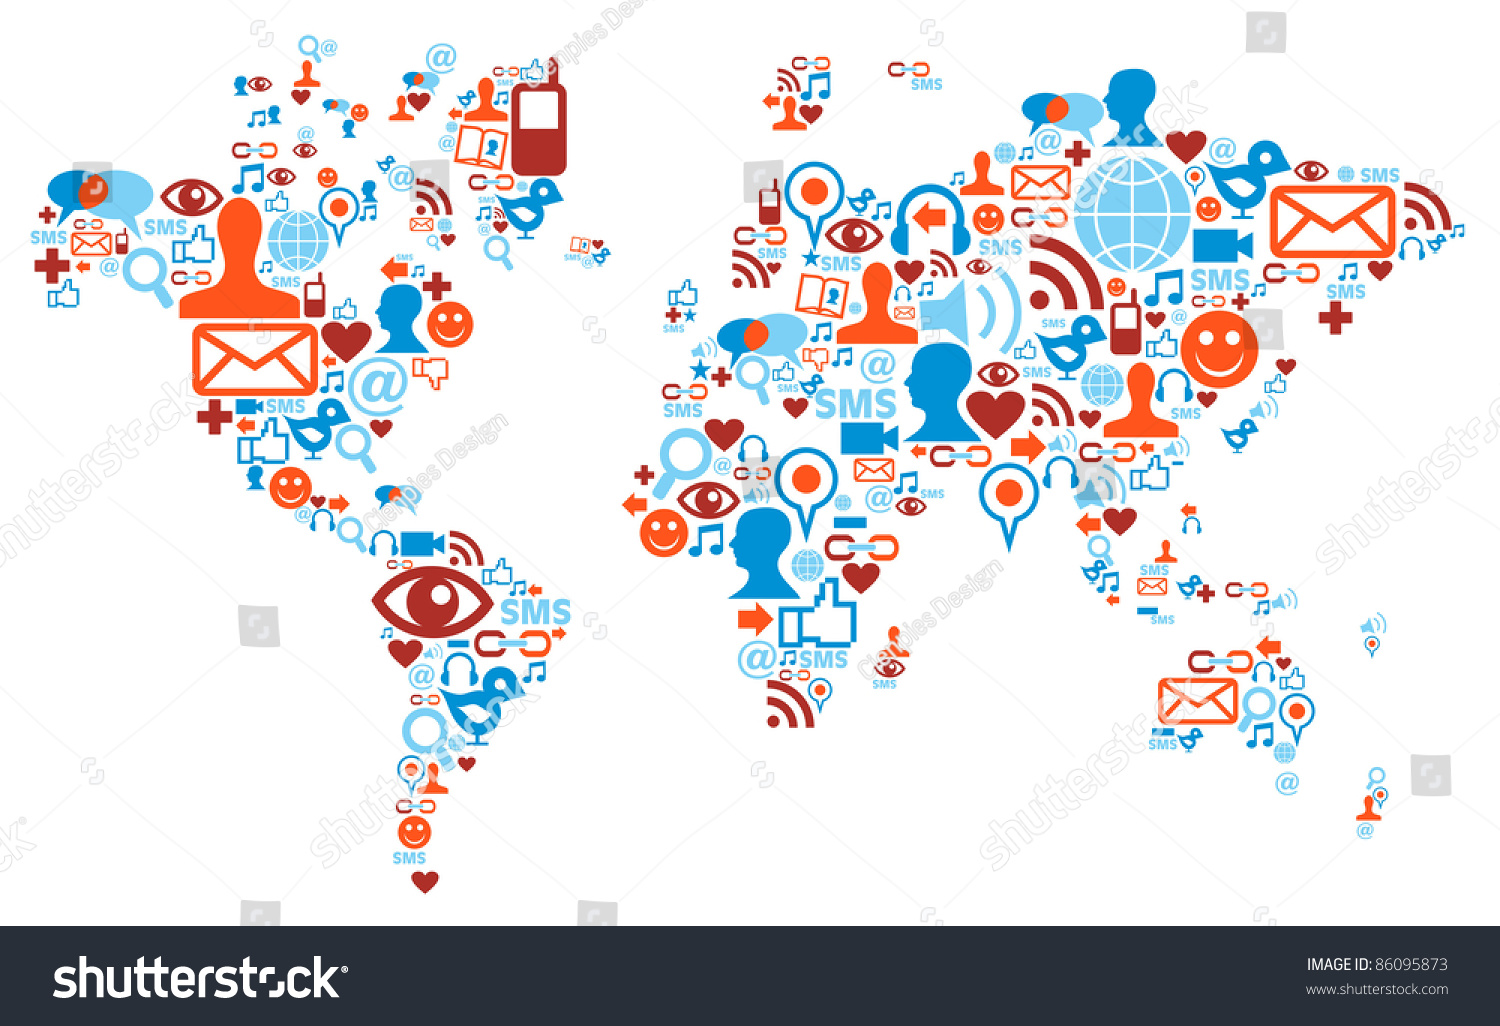 Social media network icons world map stock vector 86095873 social media network icons world map stock vector 86095873 shutterstock sciox Images